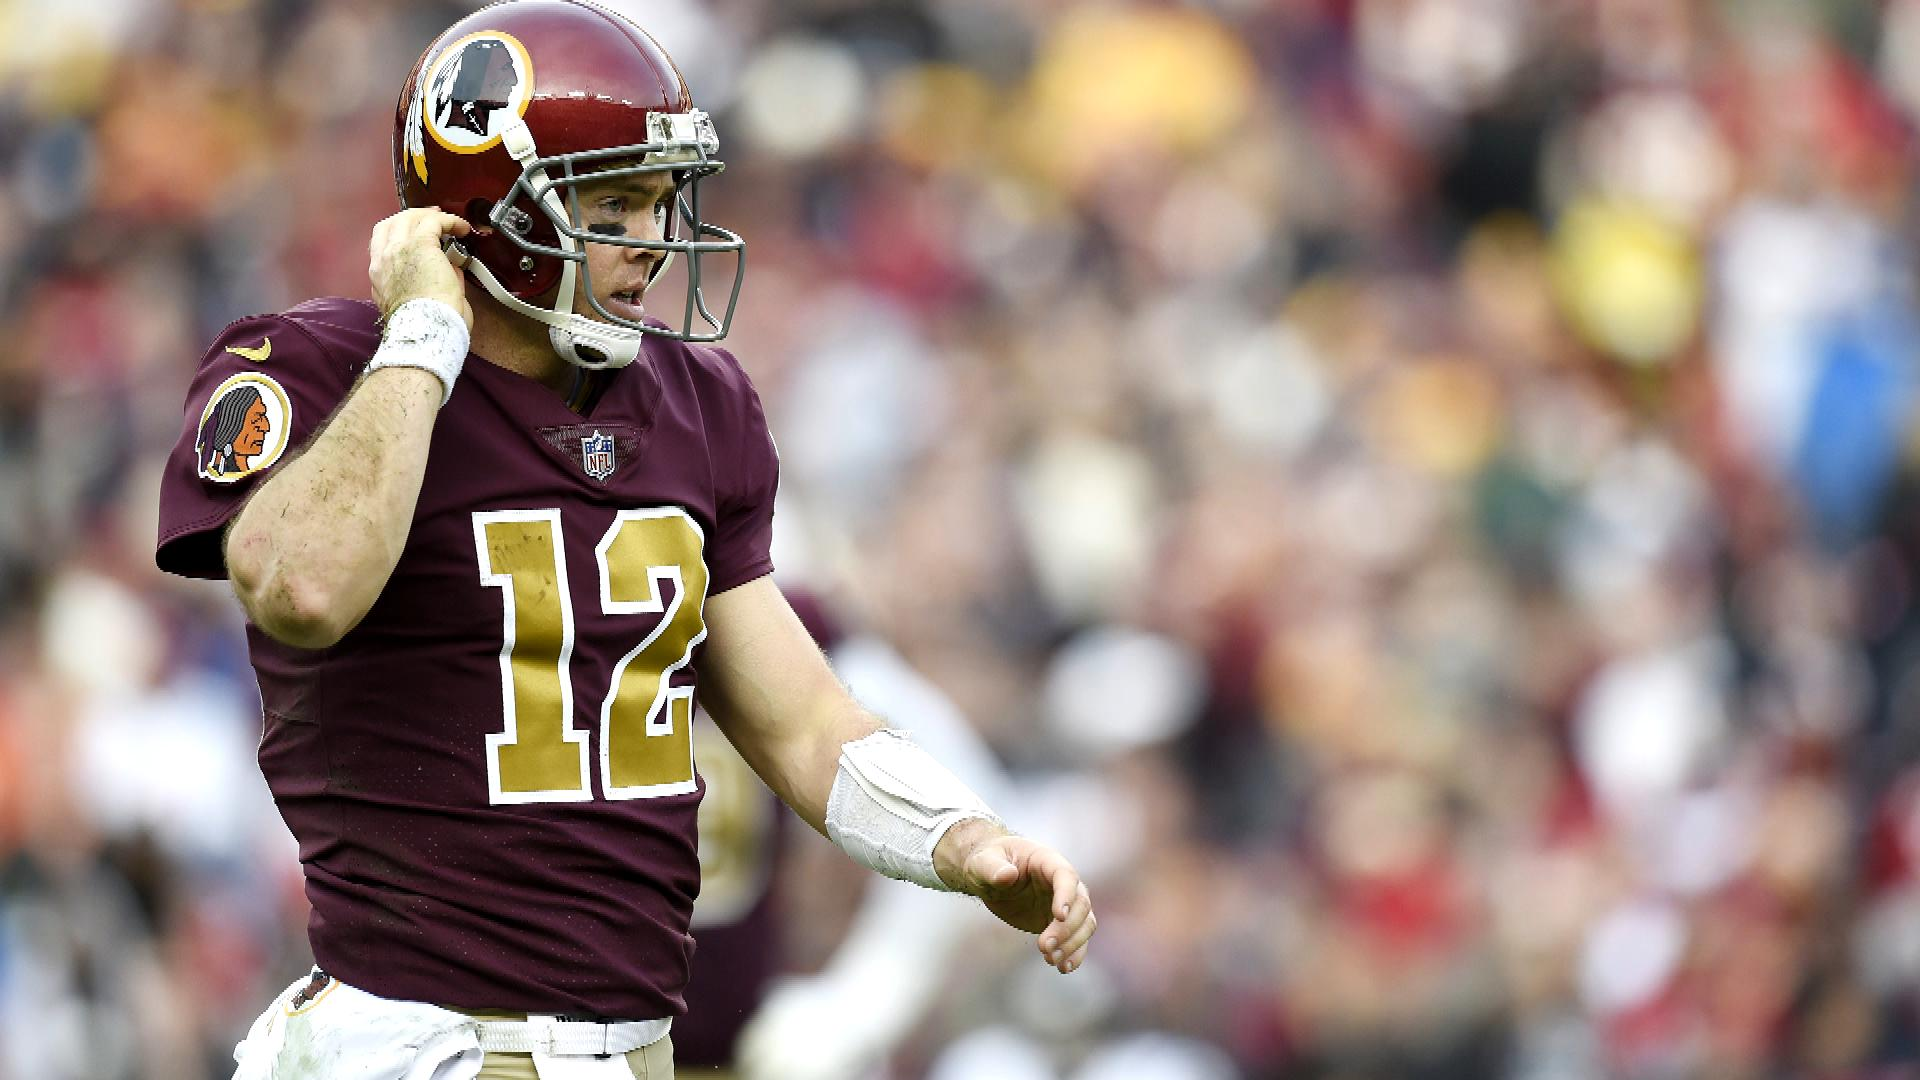 Colt McCoy may be odd man out in Redskins' QB competition